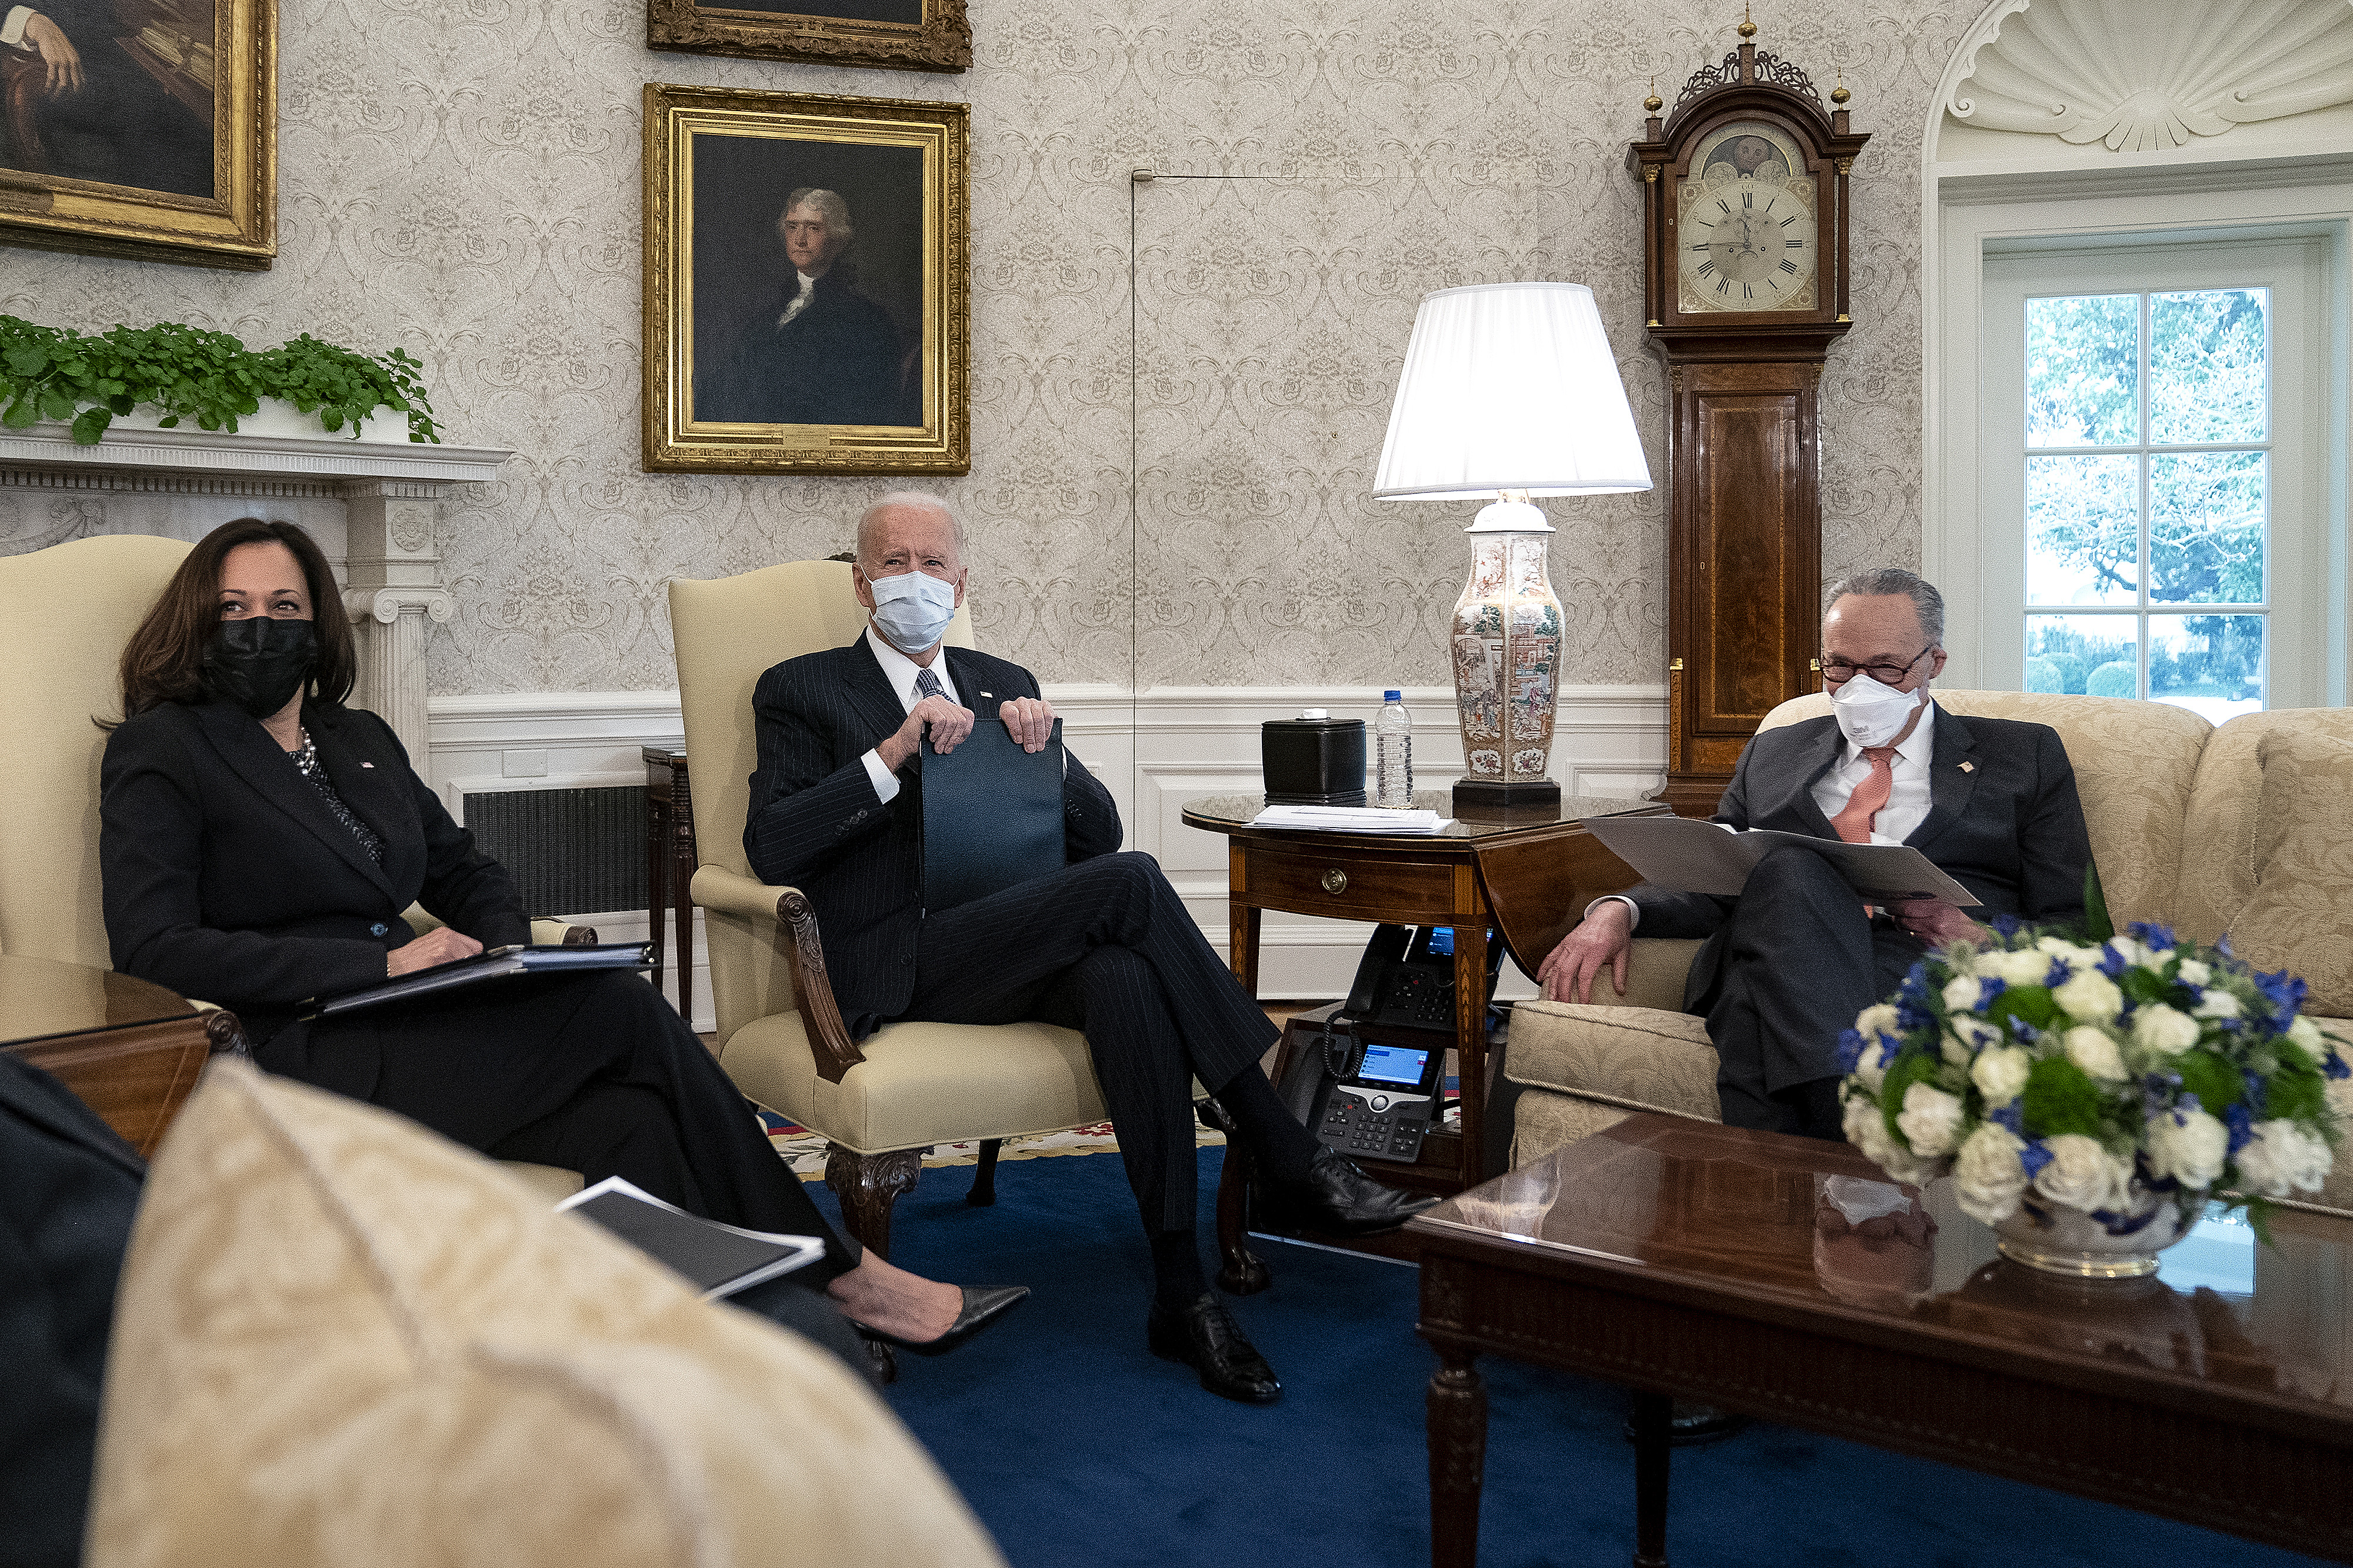 Harris, Biden, and Schumer, all wearing masks and dark suits, sit in an ornately furnished room, talking, with documents in front of them.